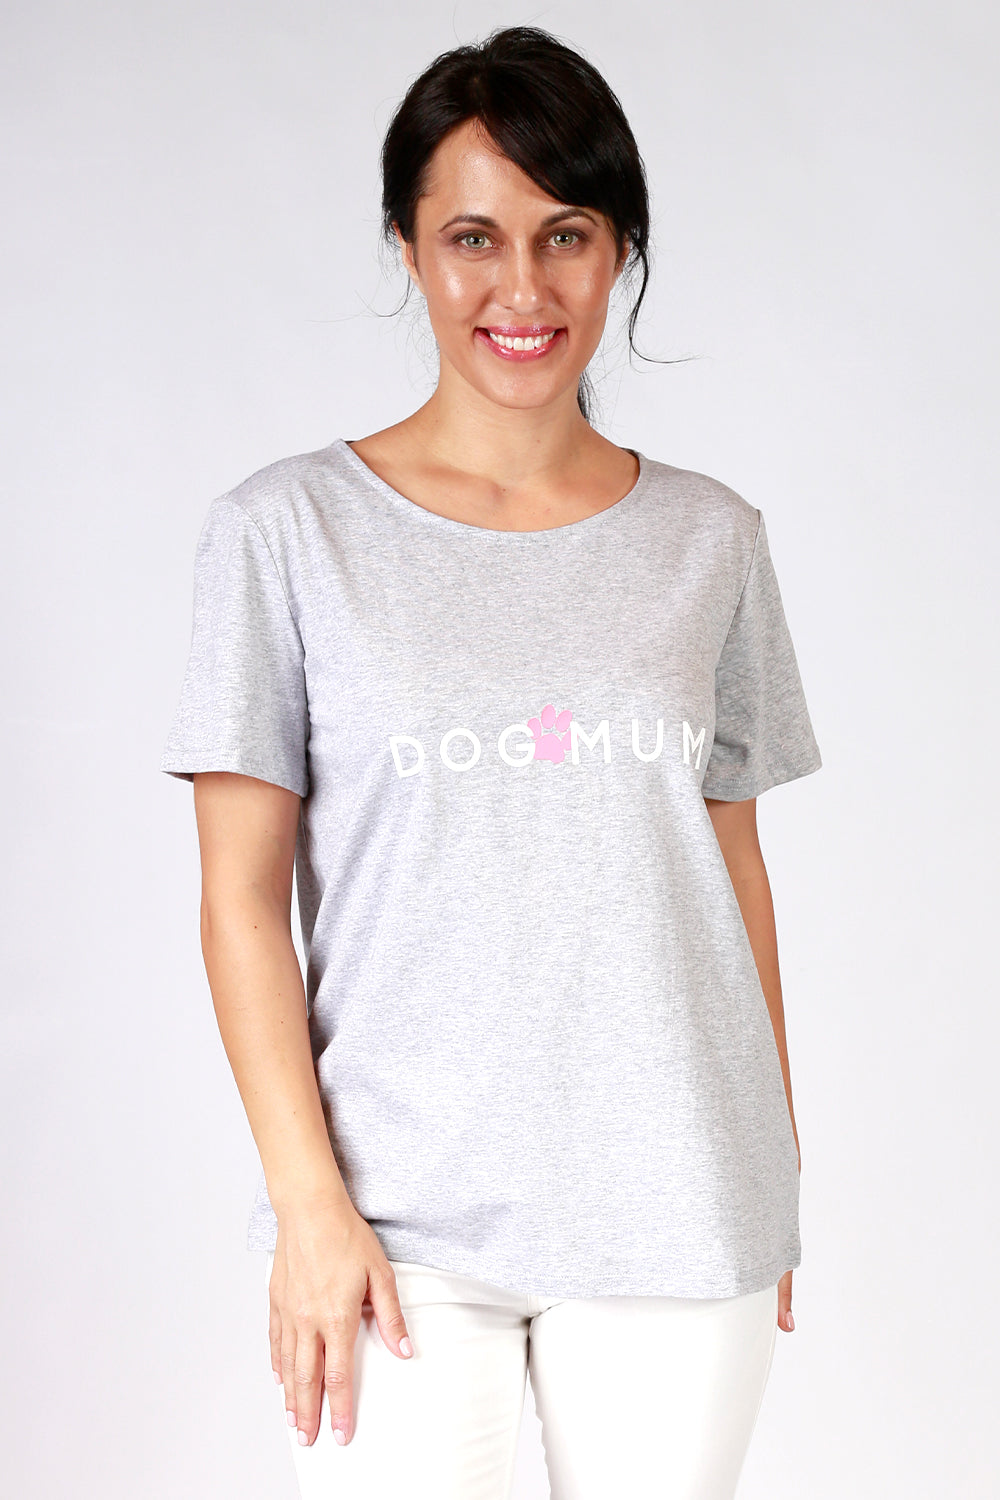 The Dog Mum Tee